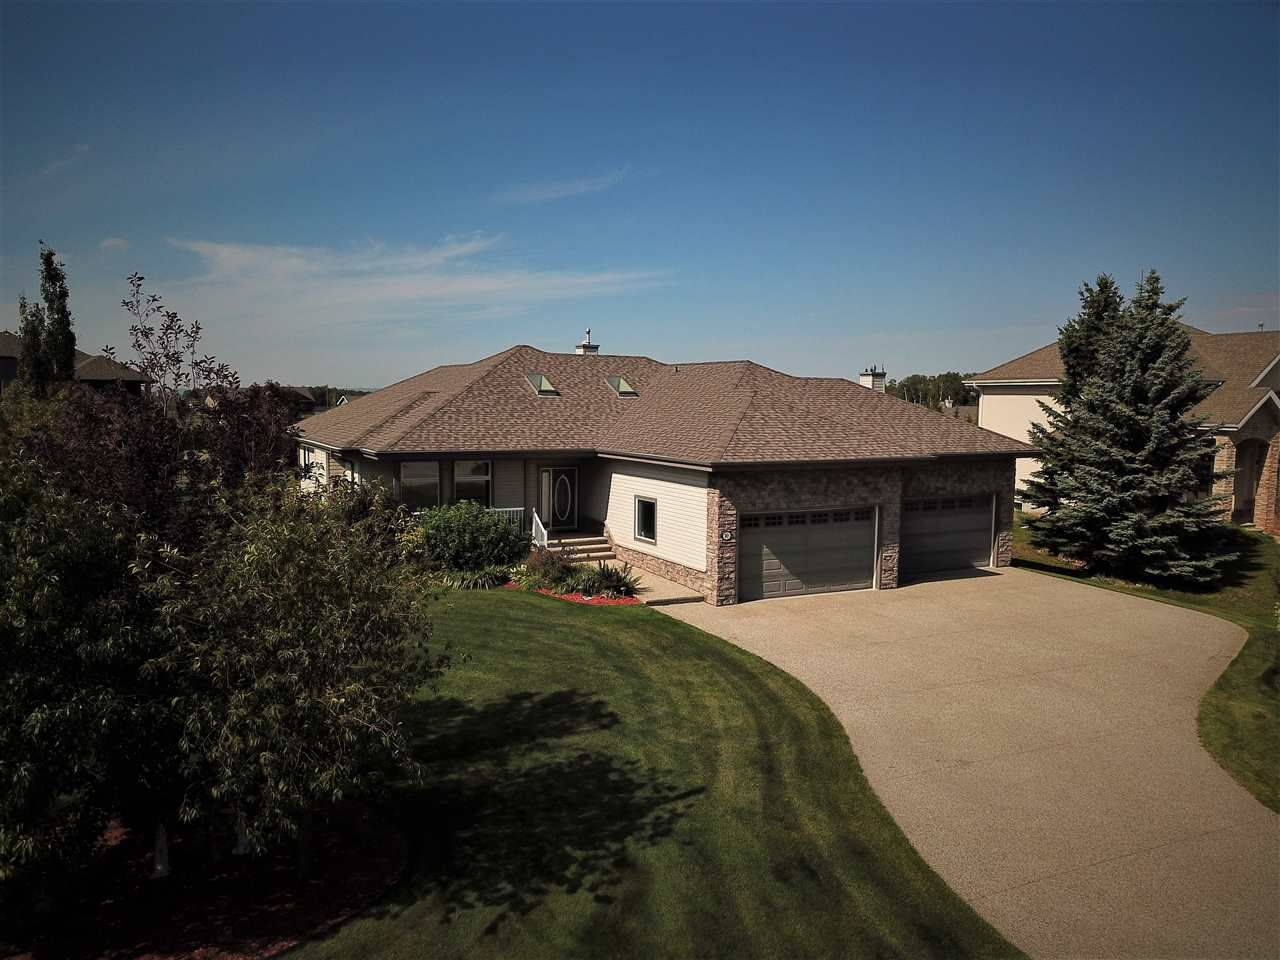 Main Photo: 10 26126 HWY 16: Rural Parkland County House for sale : MLS®# E4129820